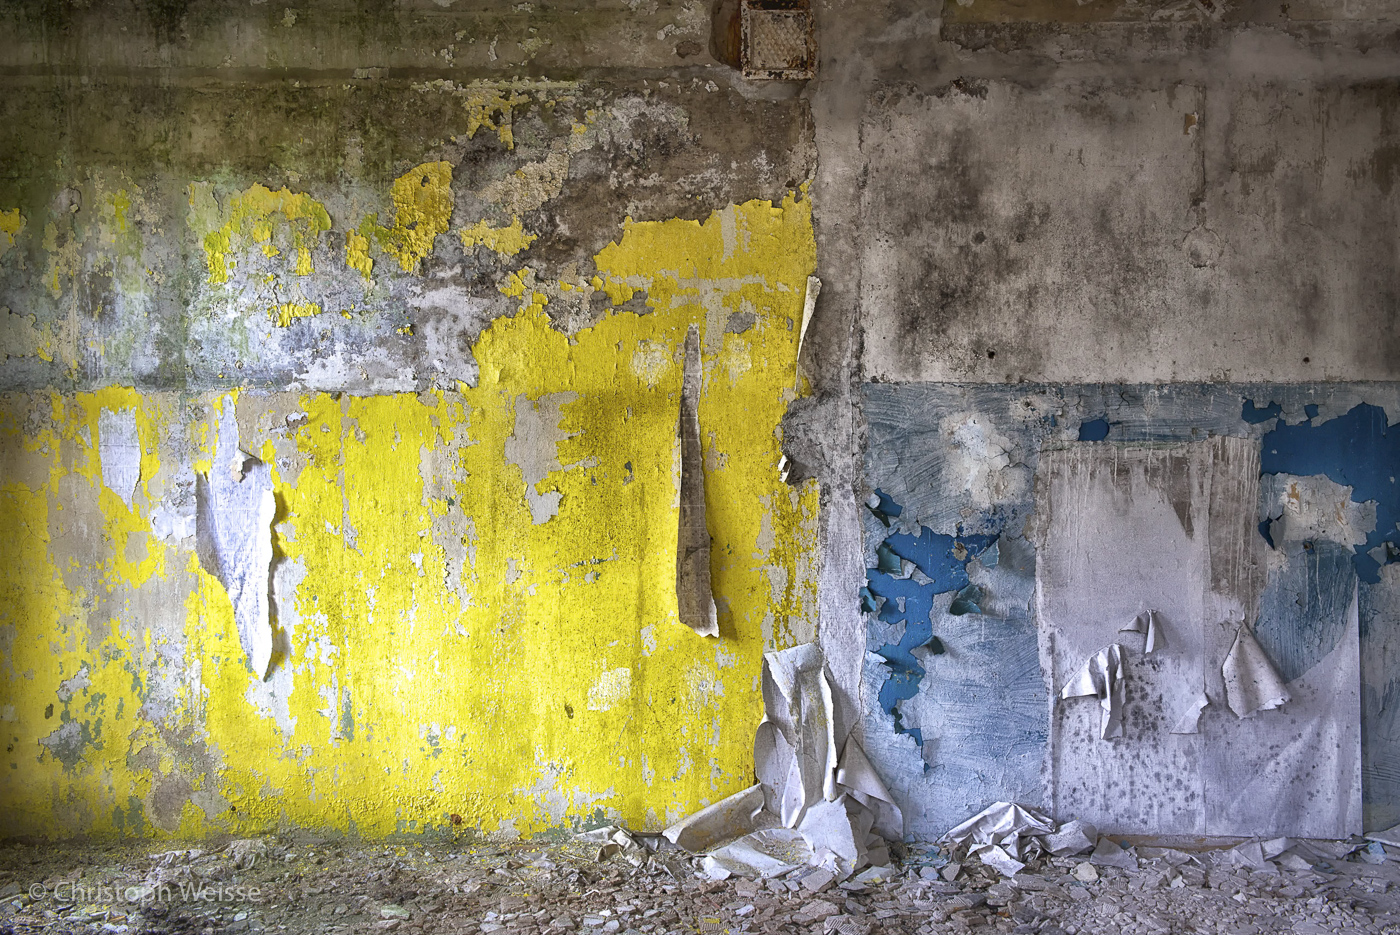 LostPlaces-www.christophweisse.com-10.jpg